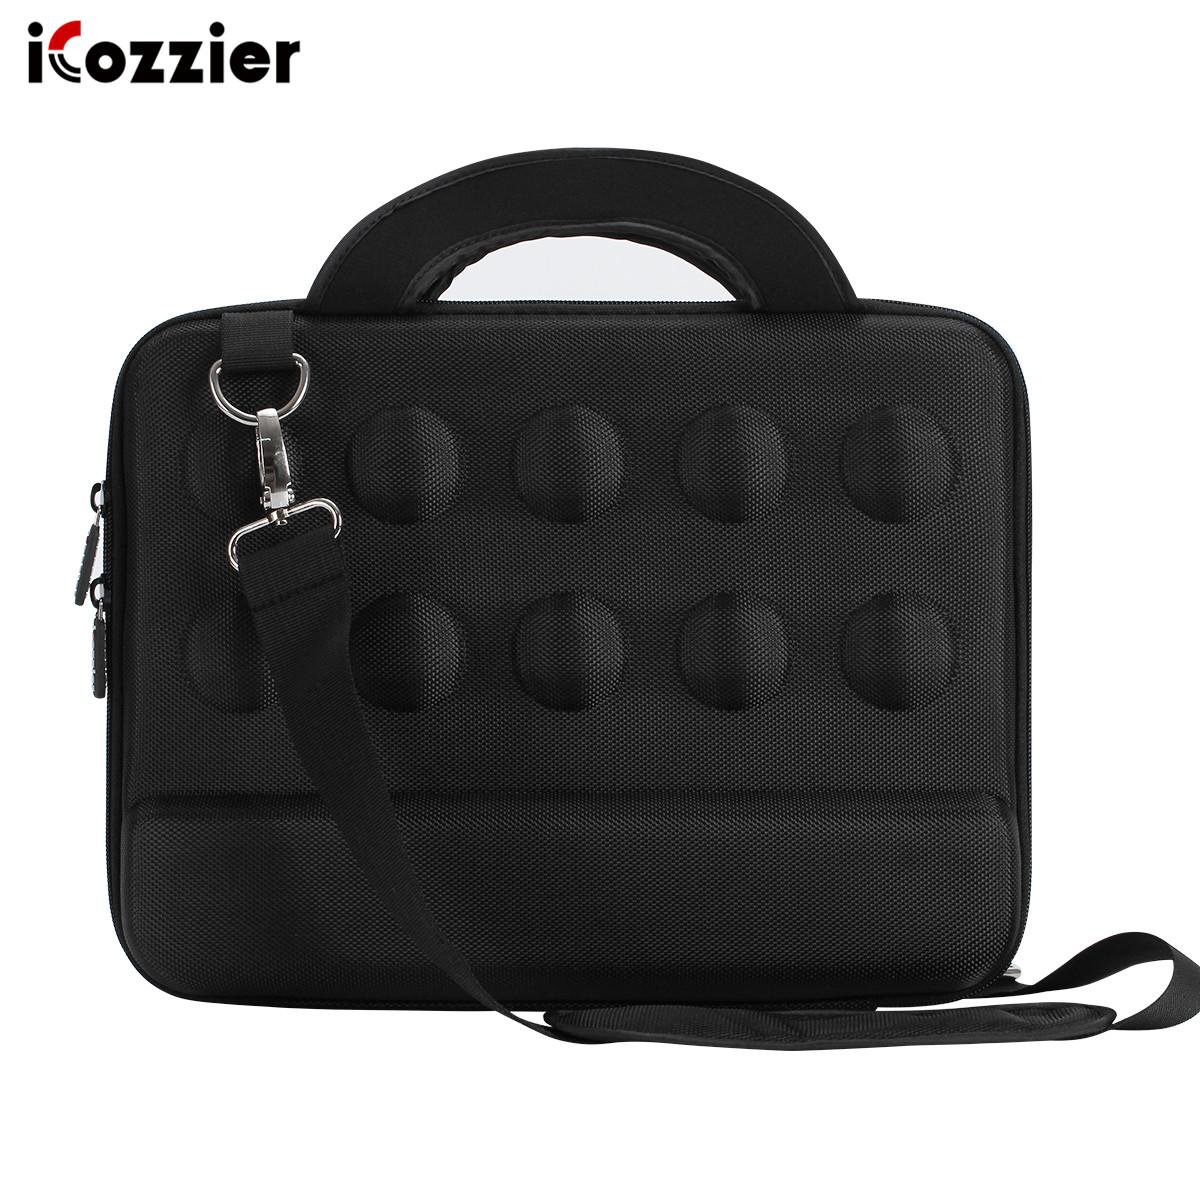 iCozzier 11.6 inch Water-Resistant Shockproof Sleeve Carrying Bag Laptop for 11.6 Macbook Pro / dell Laptop Sleeve Case Bag image